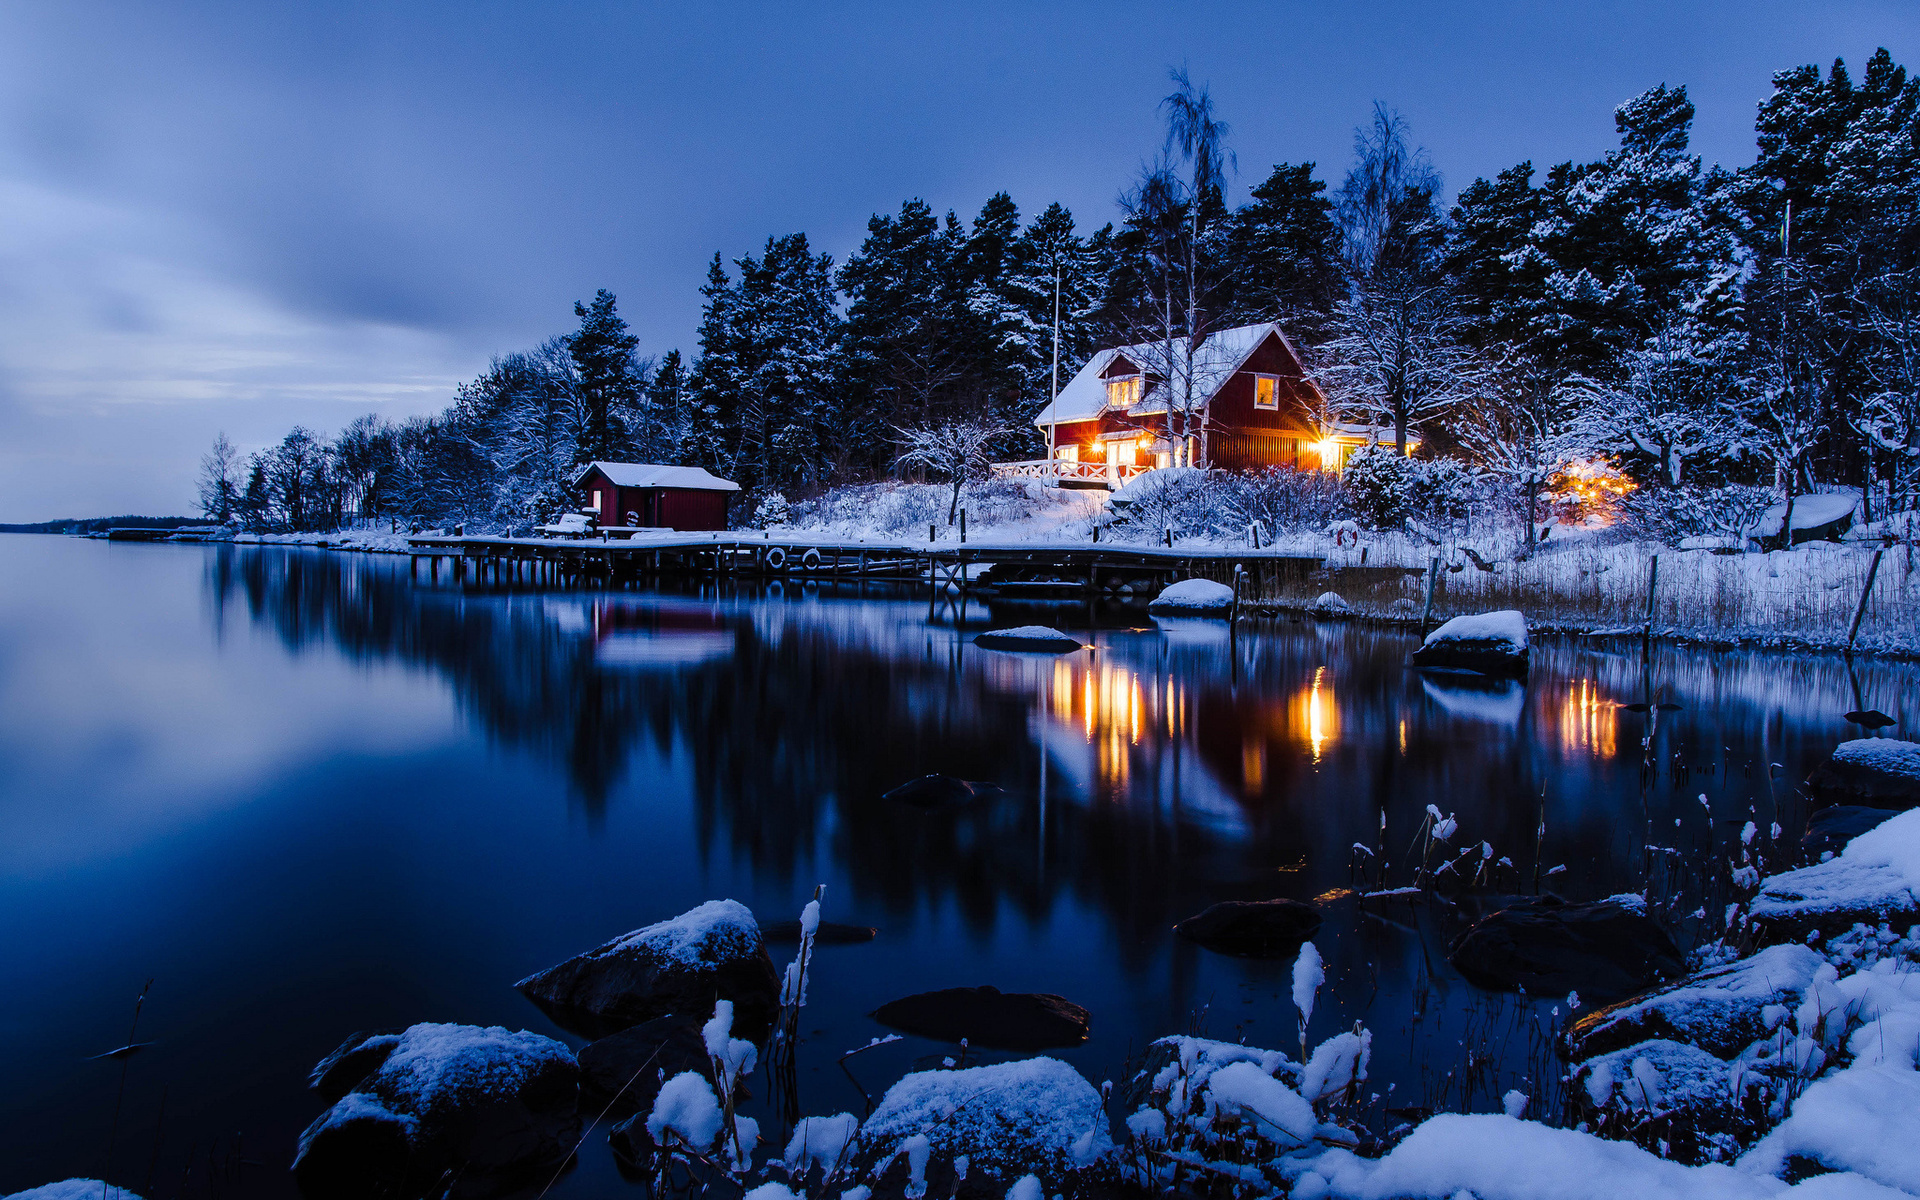 22041 download wallpaper Landscape, Winter, Houses, Lakes screensavers and pictures for free